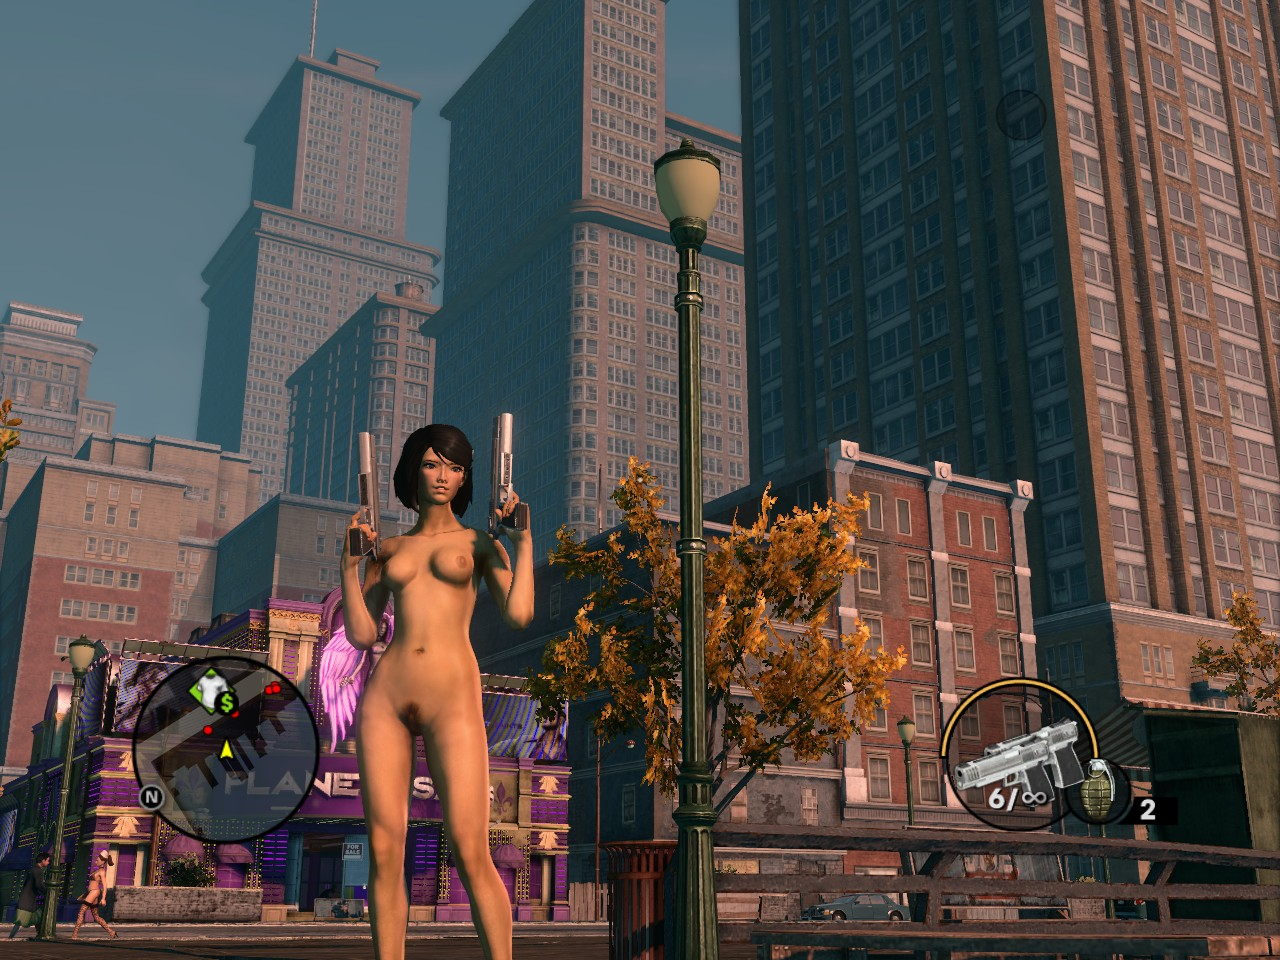 Saints row 2 nude patch steam xxx scenes